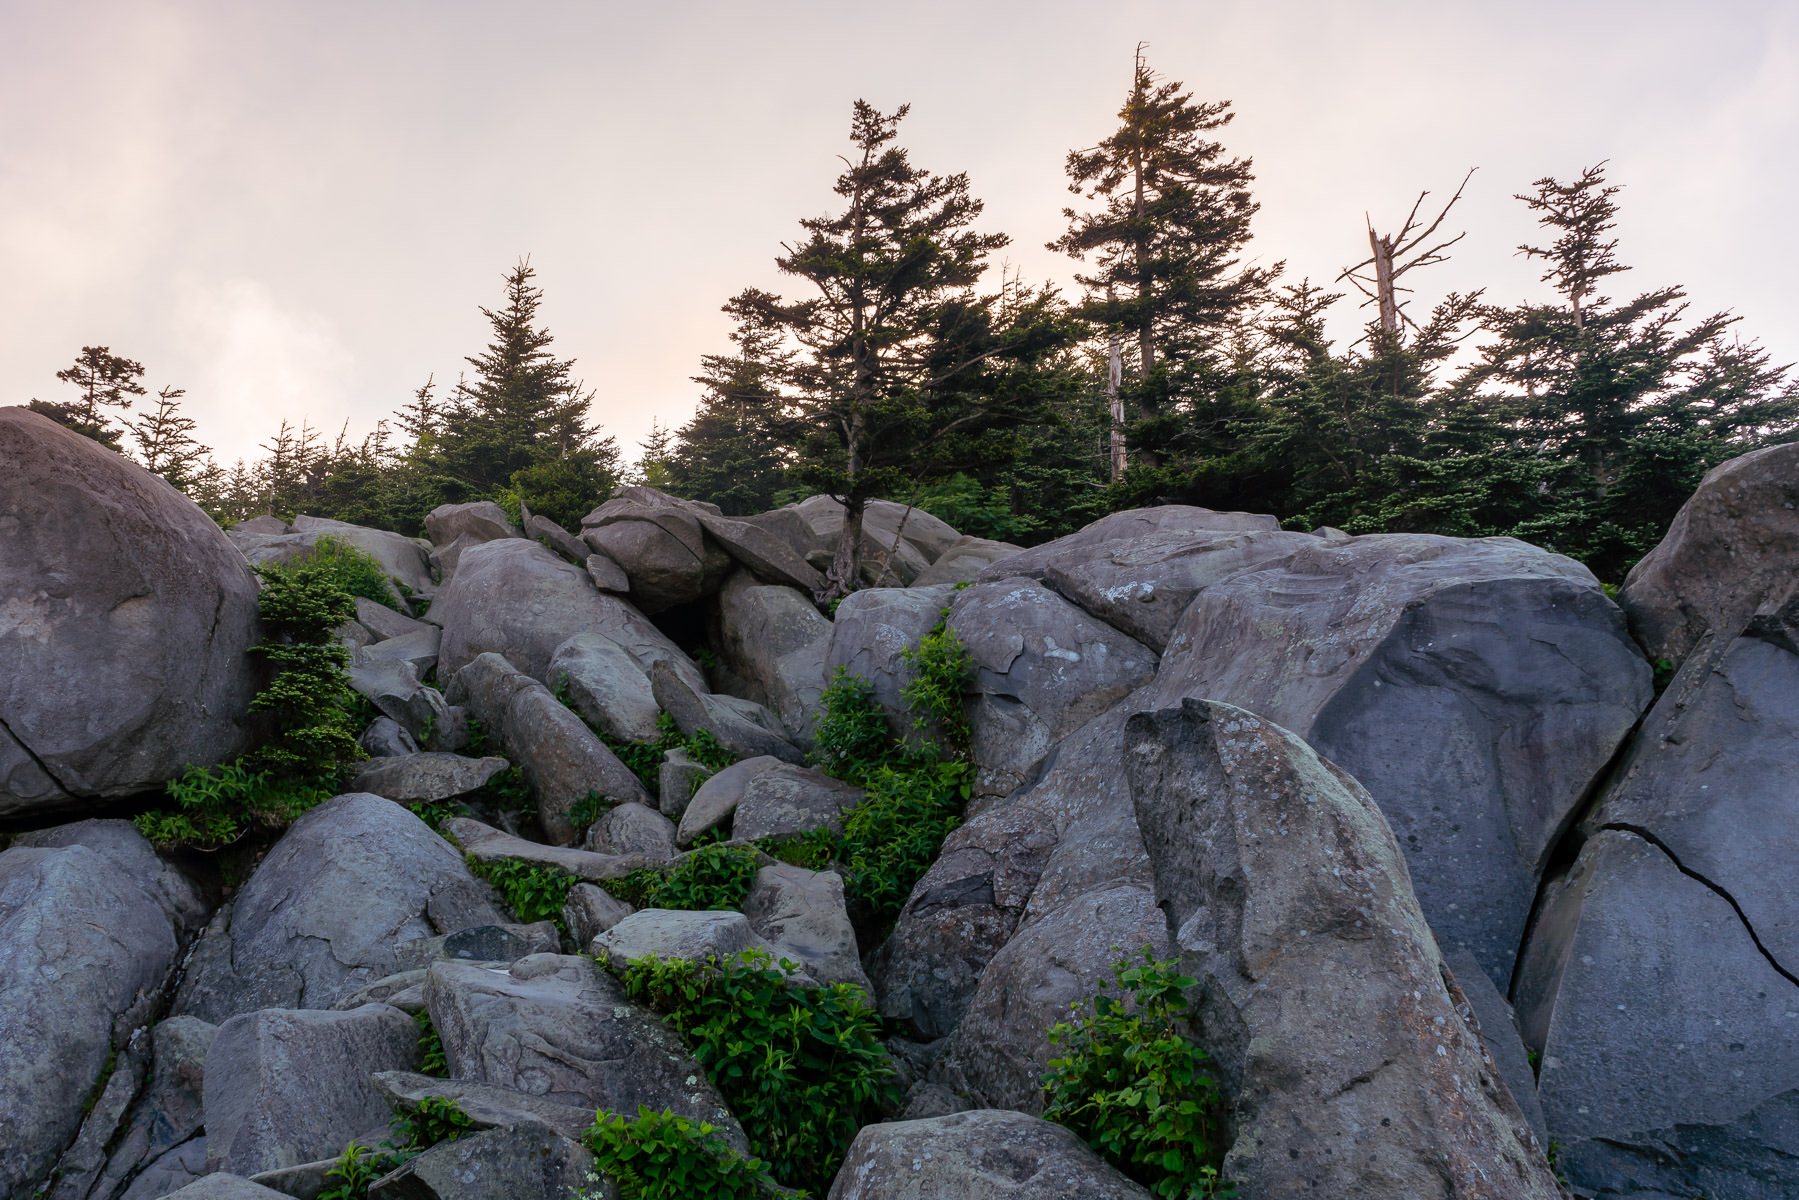 The sun begins to rise on rocks and trees near the summit of the Great Smoky Mountains National Park's Clingmans Dome.